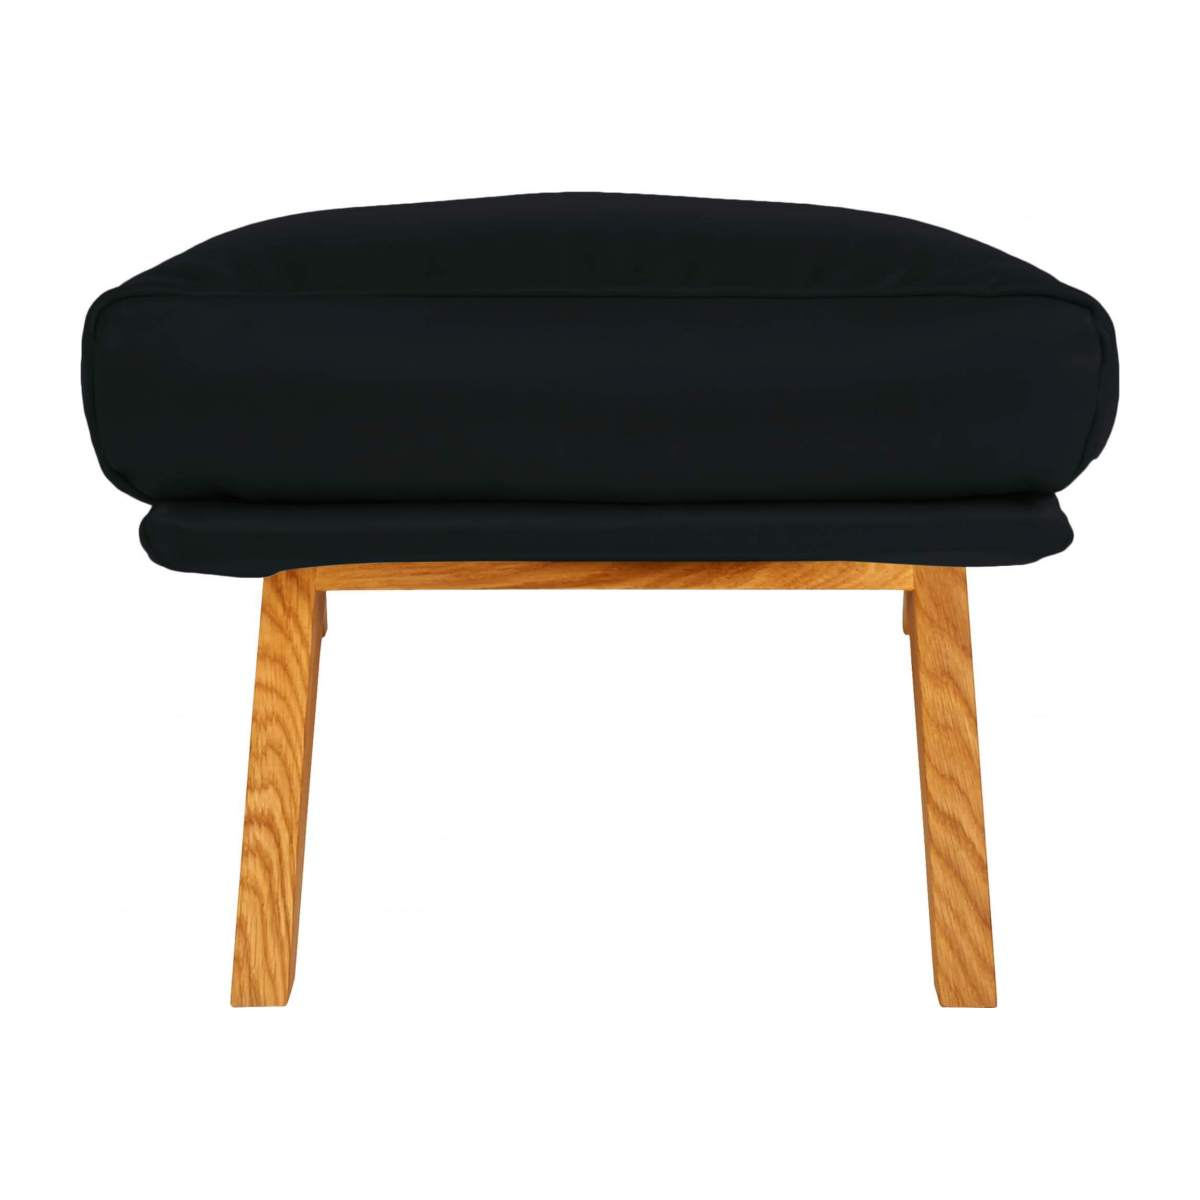 Footstool in aniline Vintage Leather, denim blue with oak legs n°3